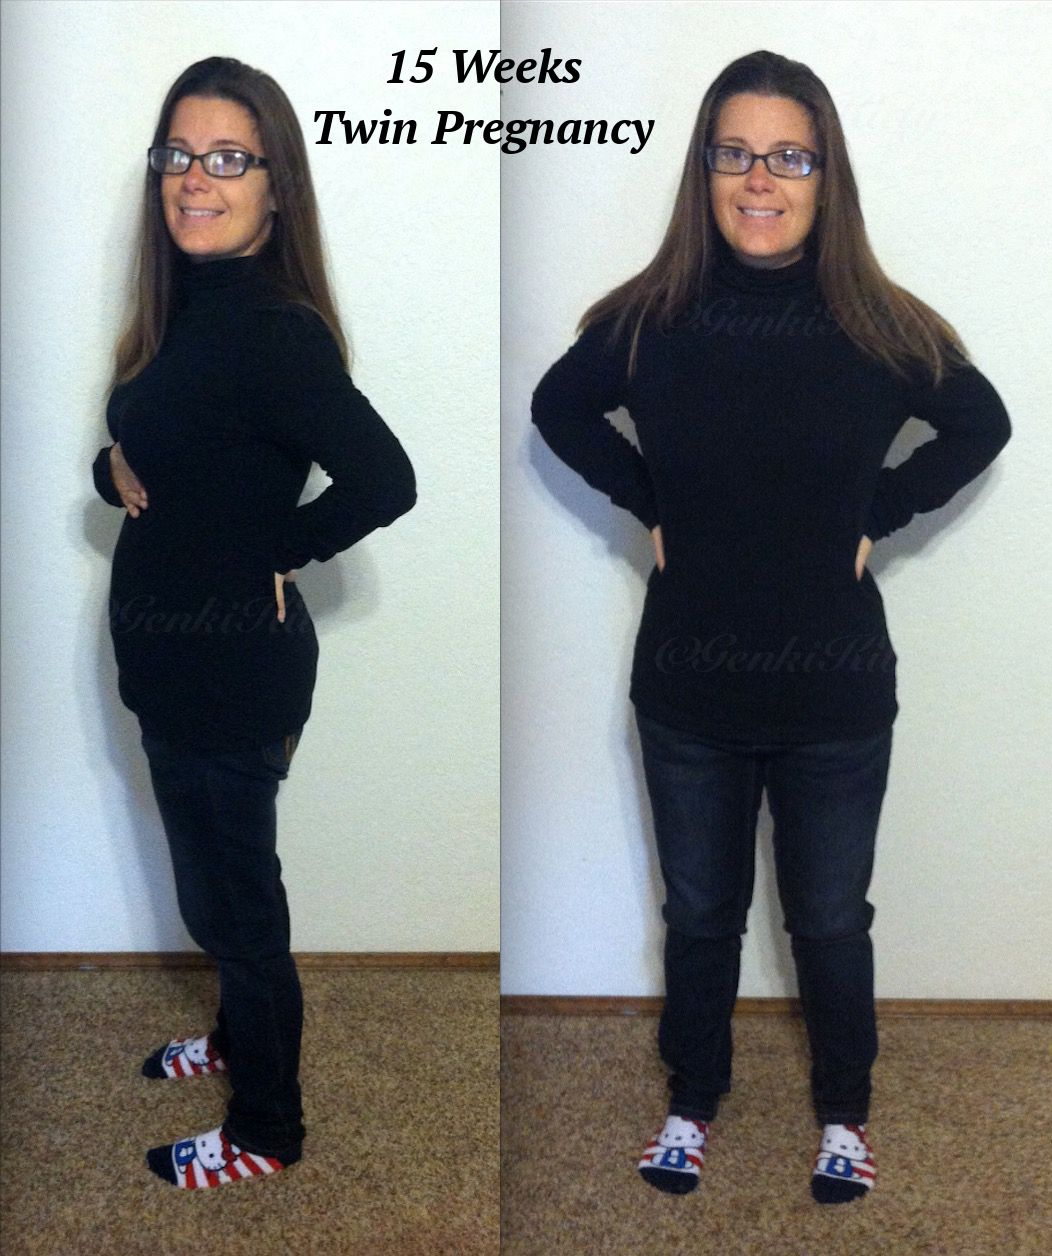 15 Weeks Twin Pregnancy Photo